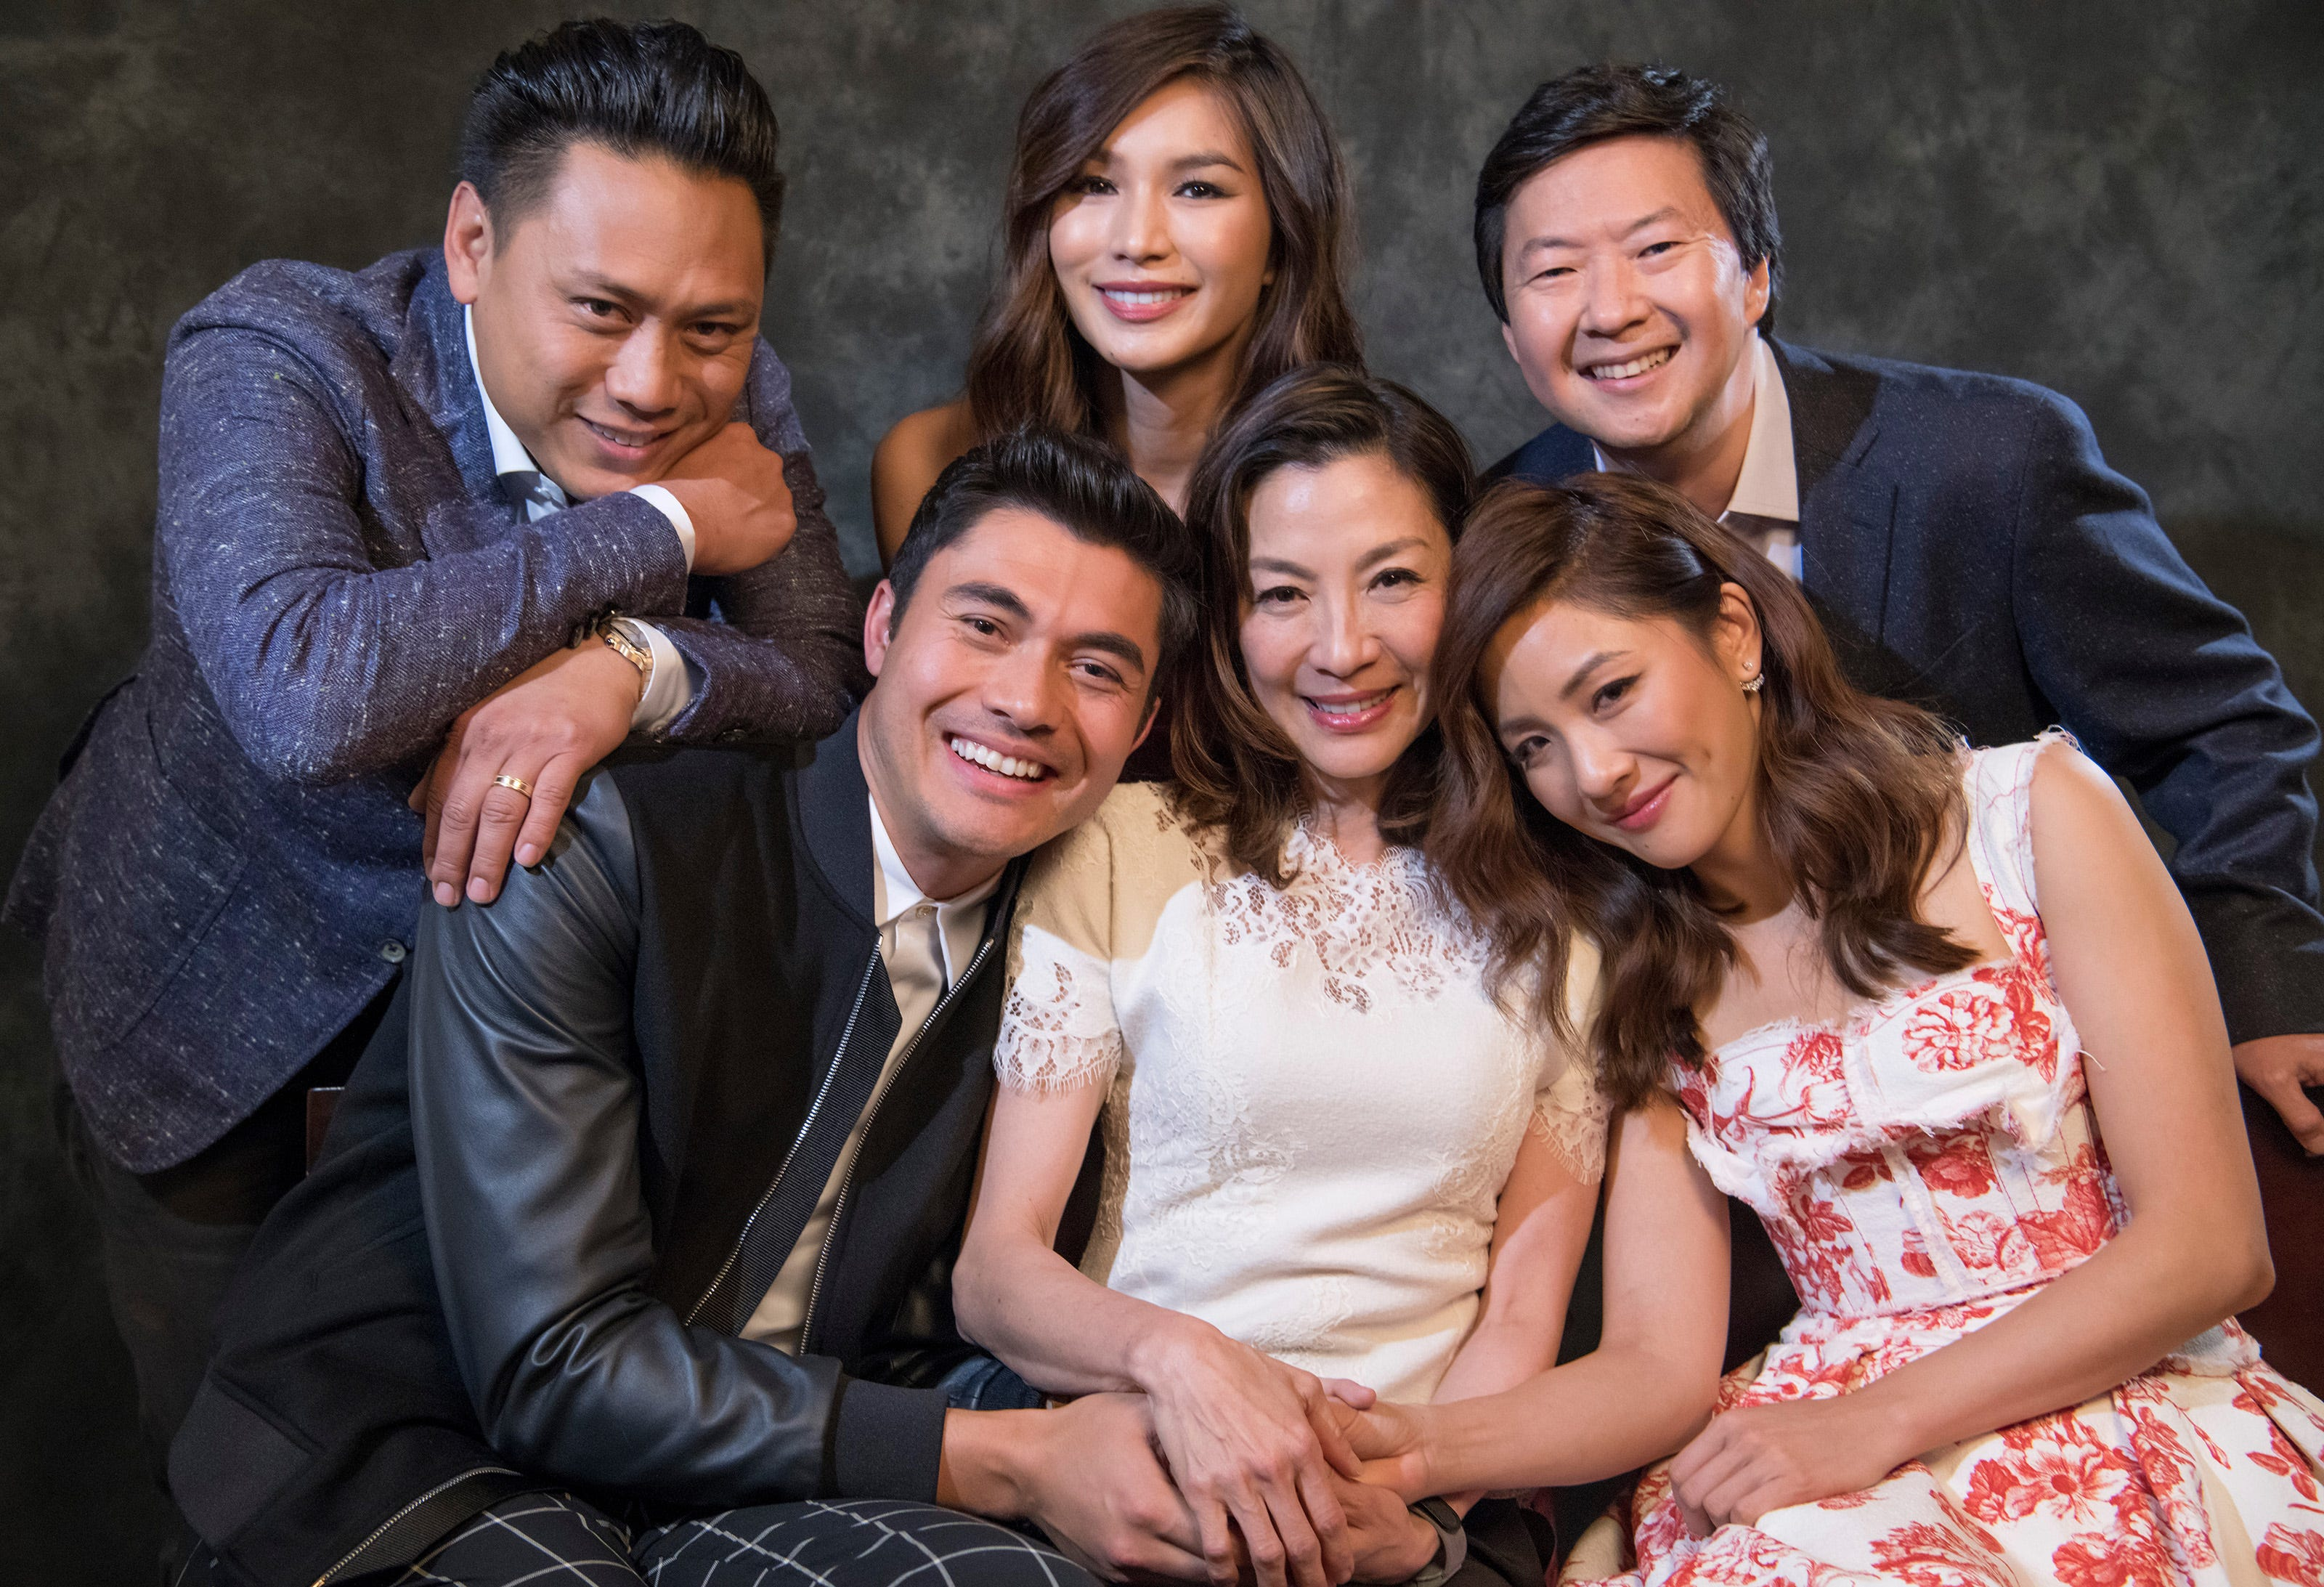 'Crazy Rich Asians' cast makes history: 'This is bigger than all of us'